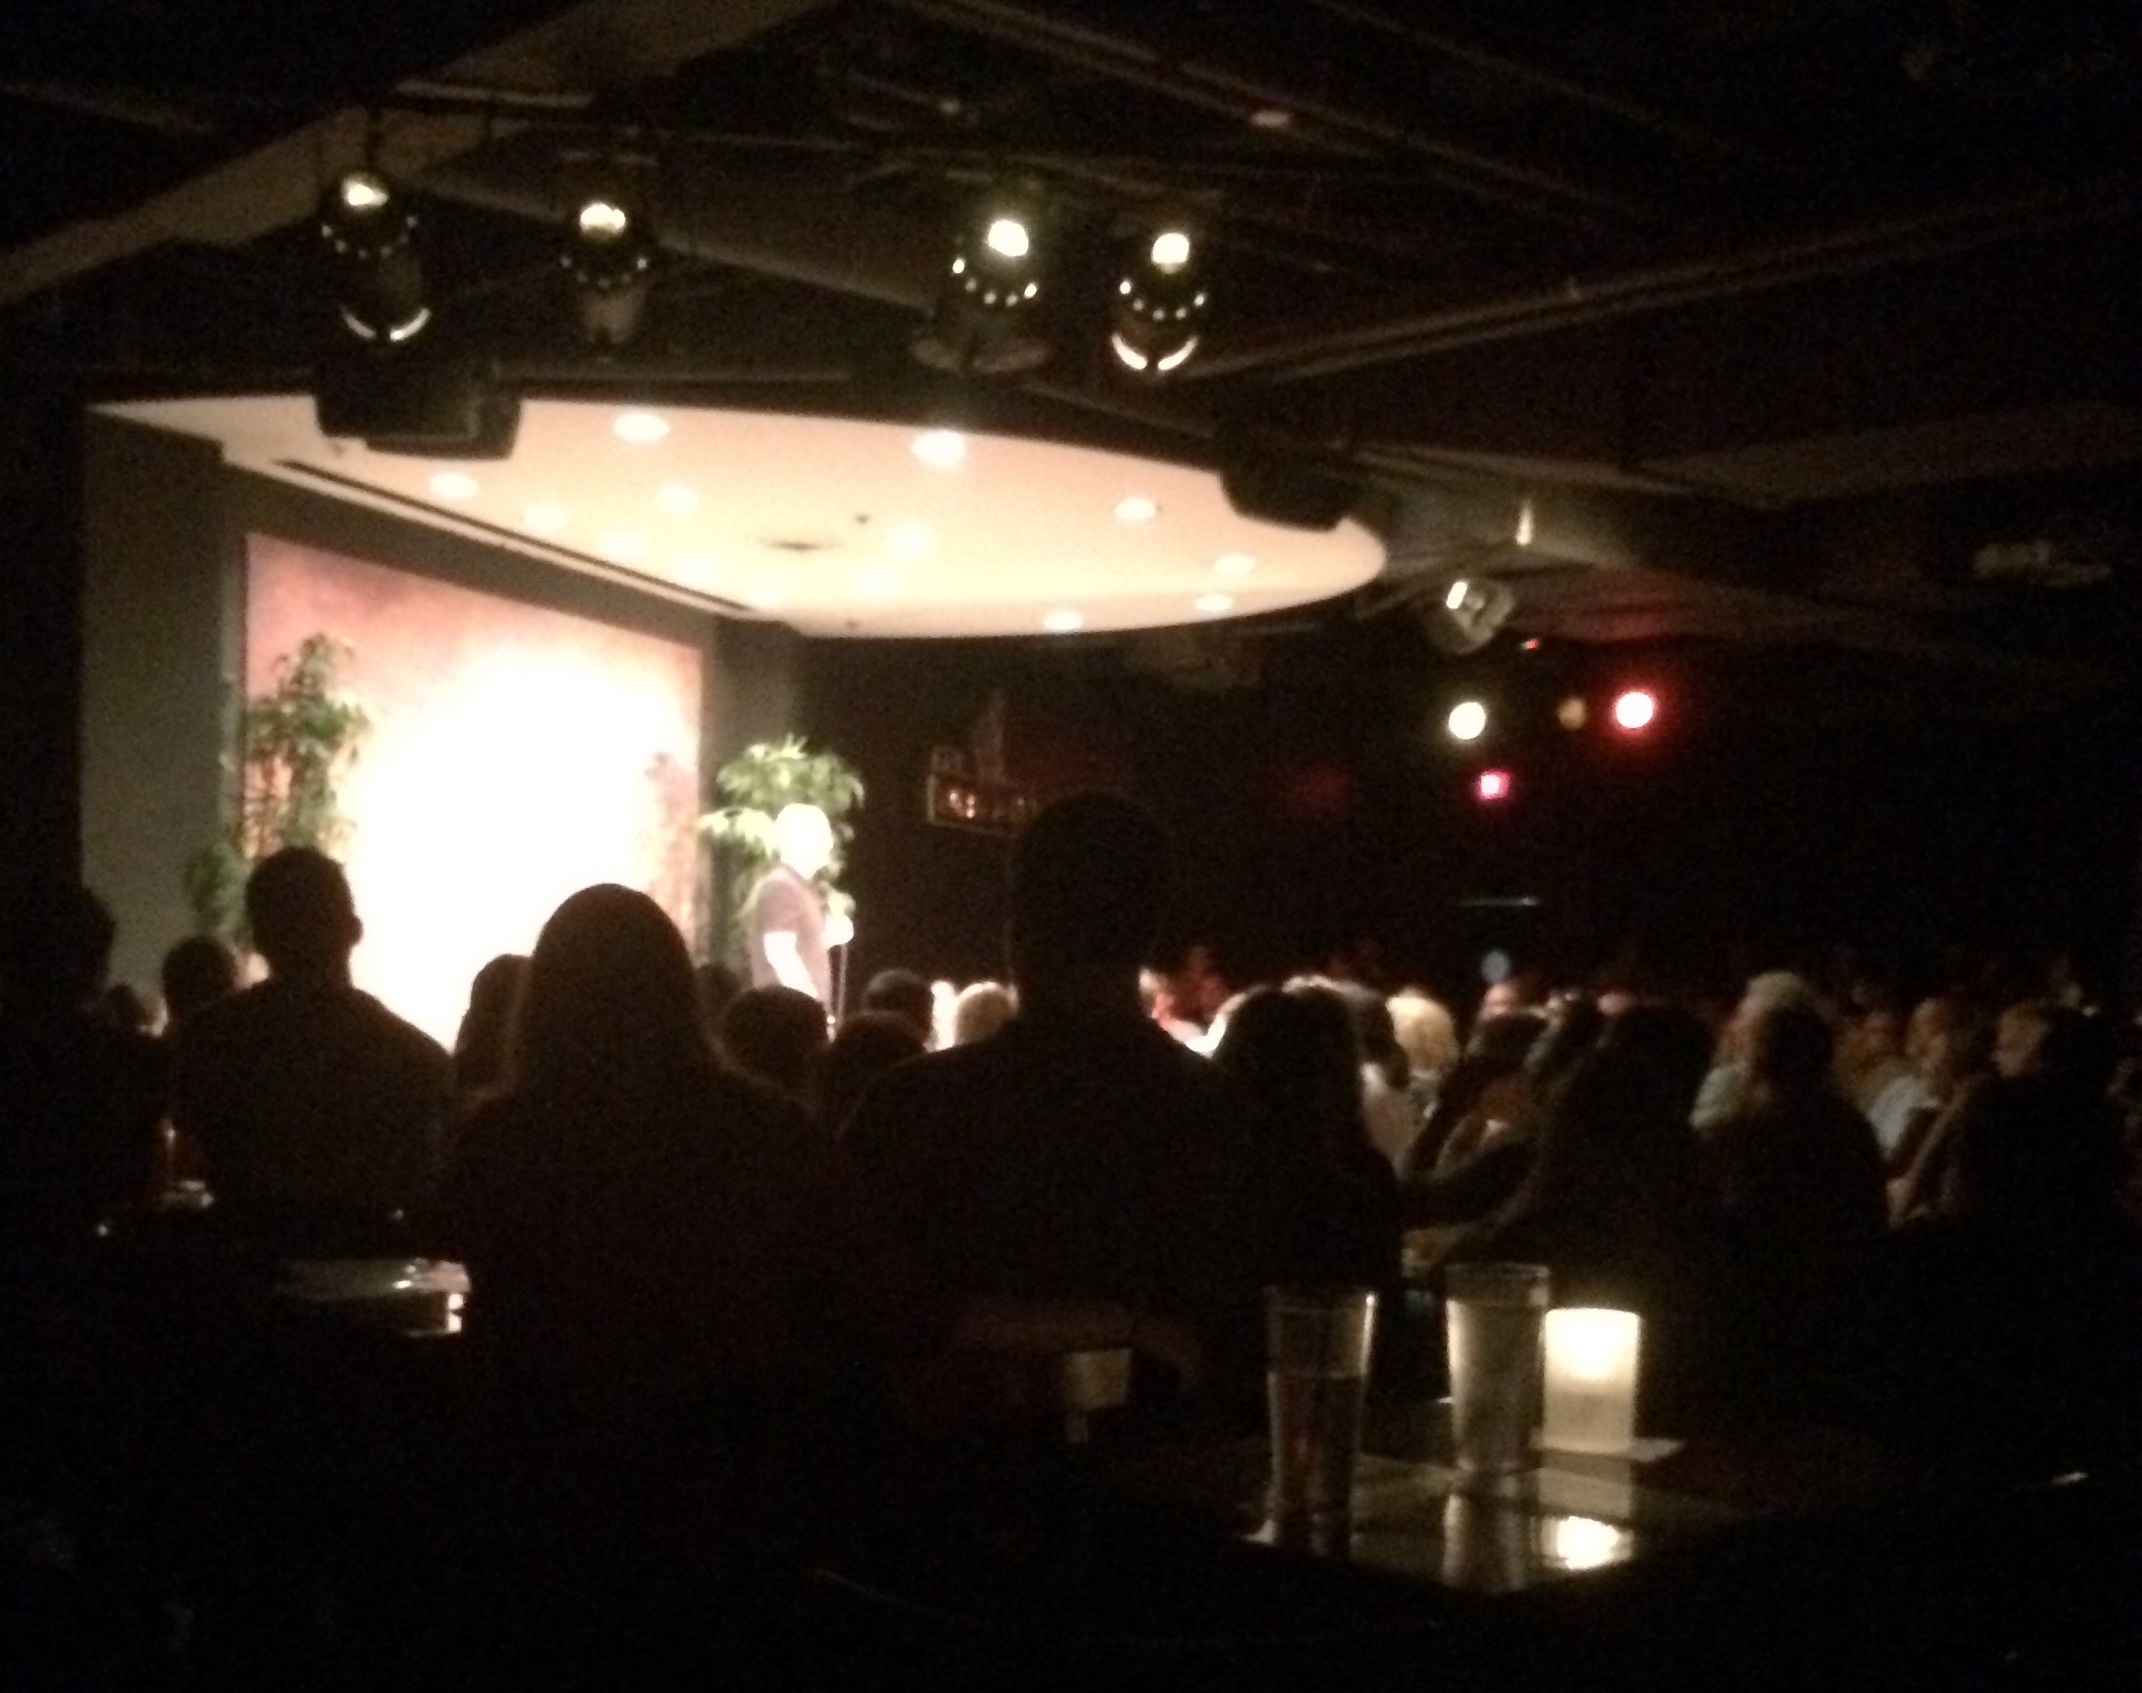 Jim Norton on stage at the Funny Bone 9/19/14 in Columbus, OH